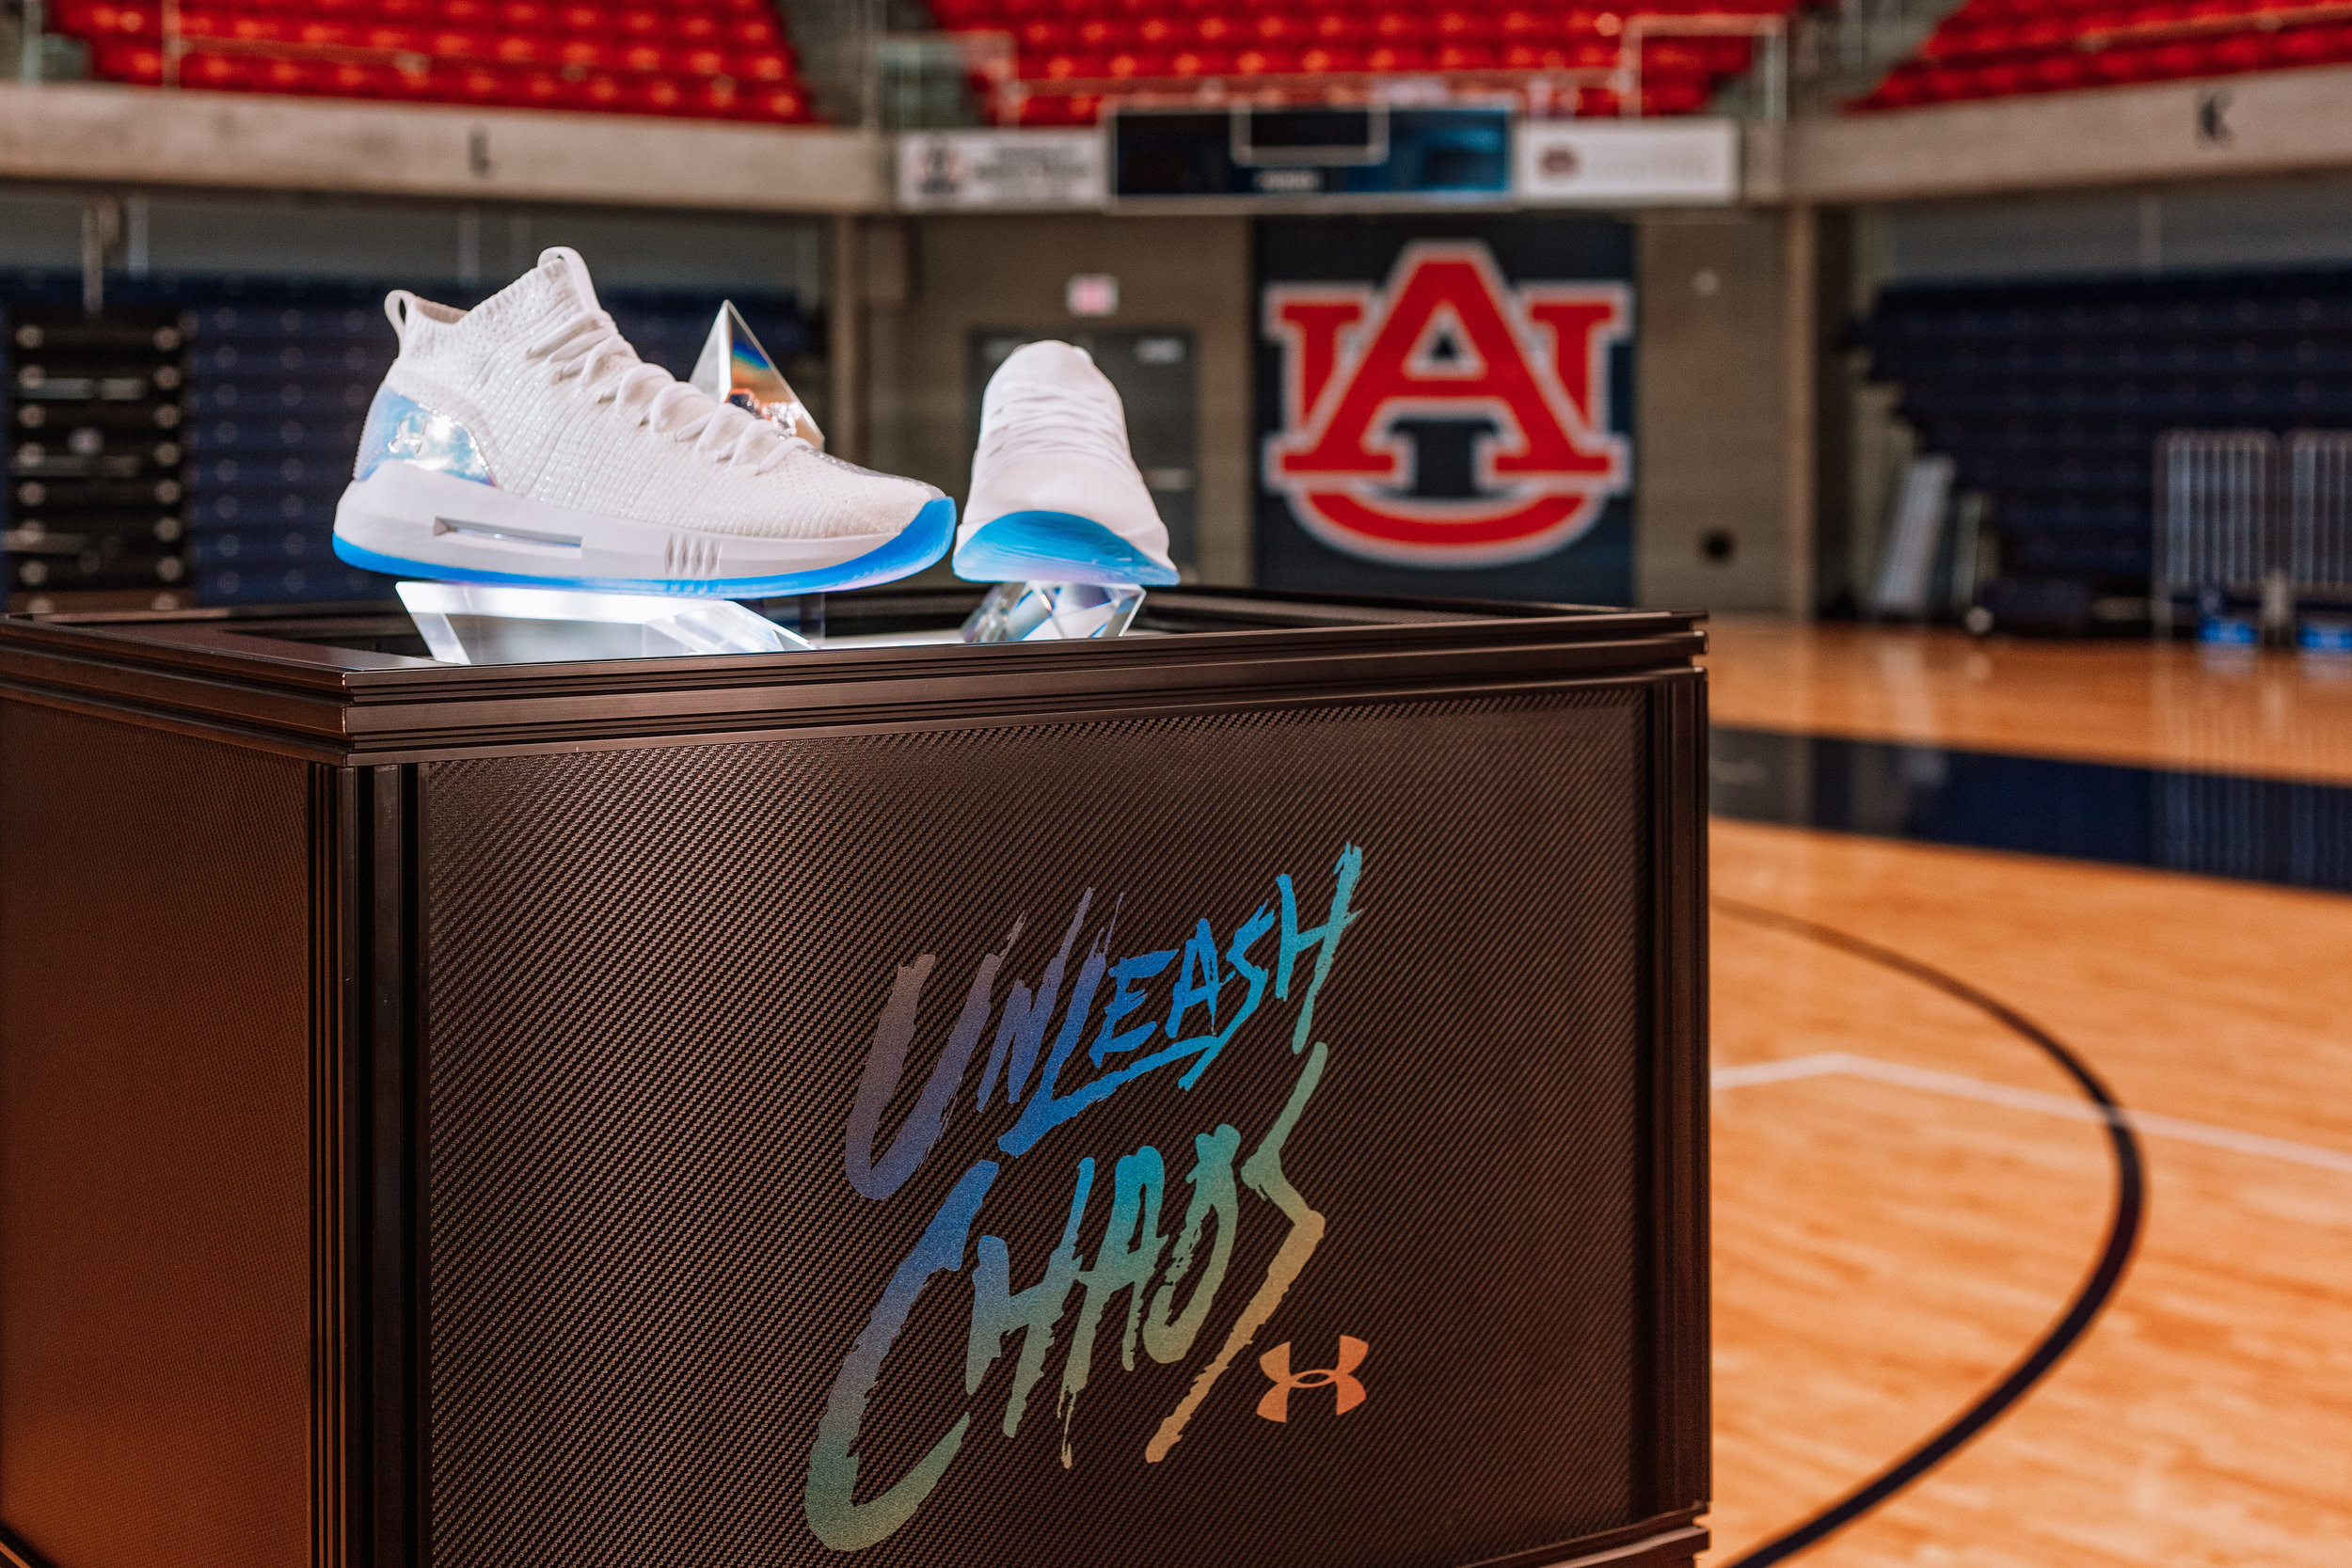 under armour march madness unleash chaos